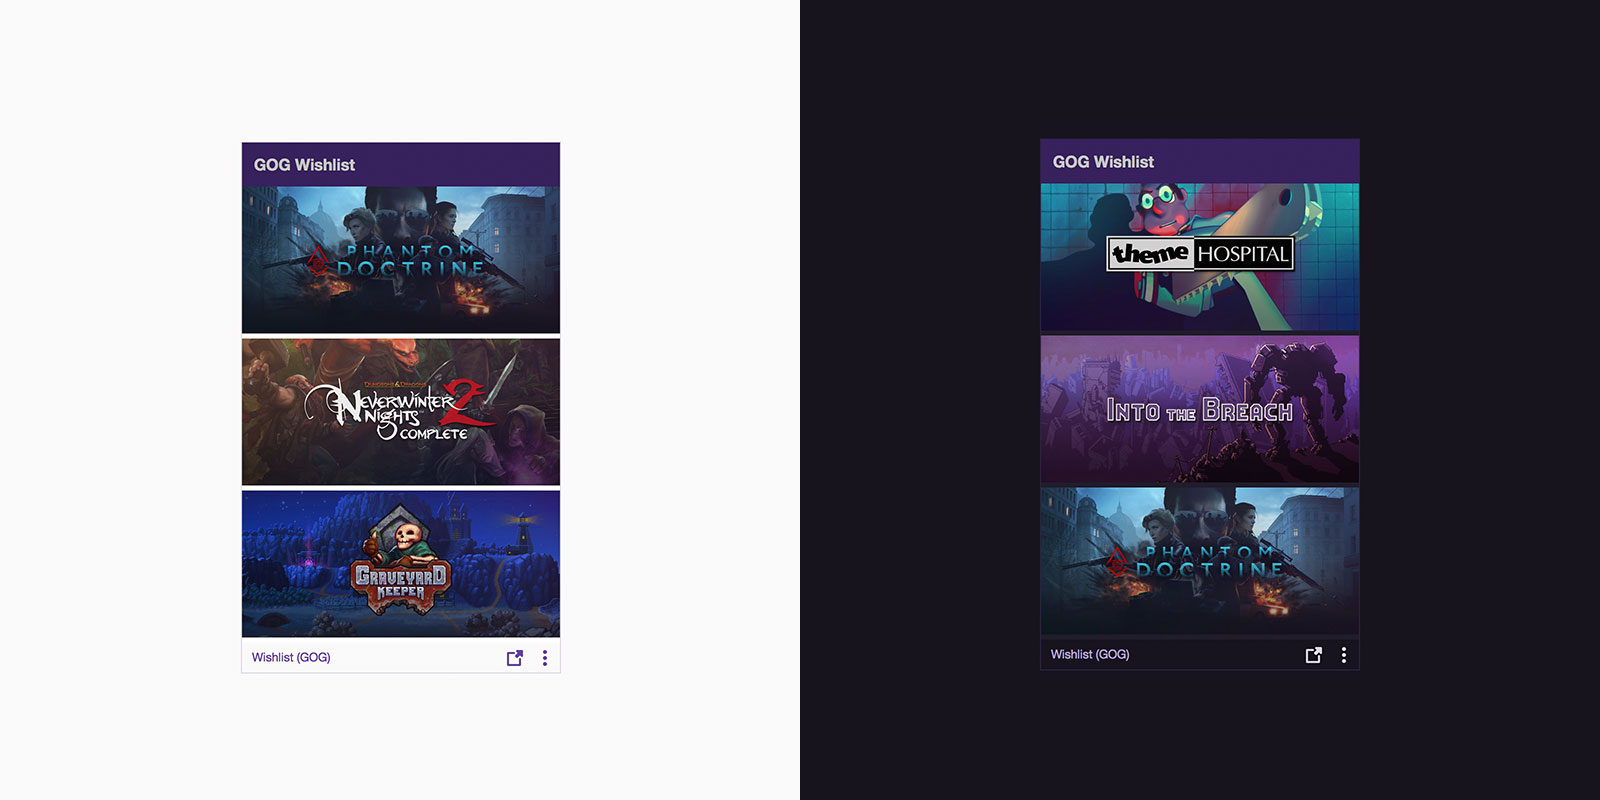 GOG Wishlist panel extension for Twitch by ShyGuysTheDod